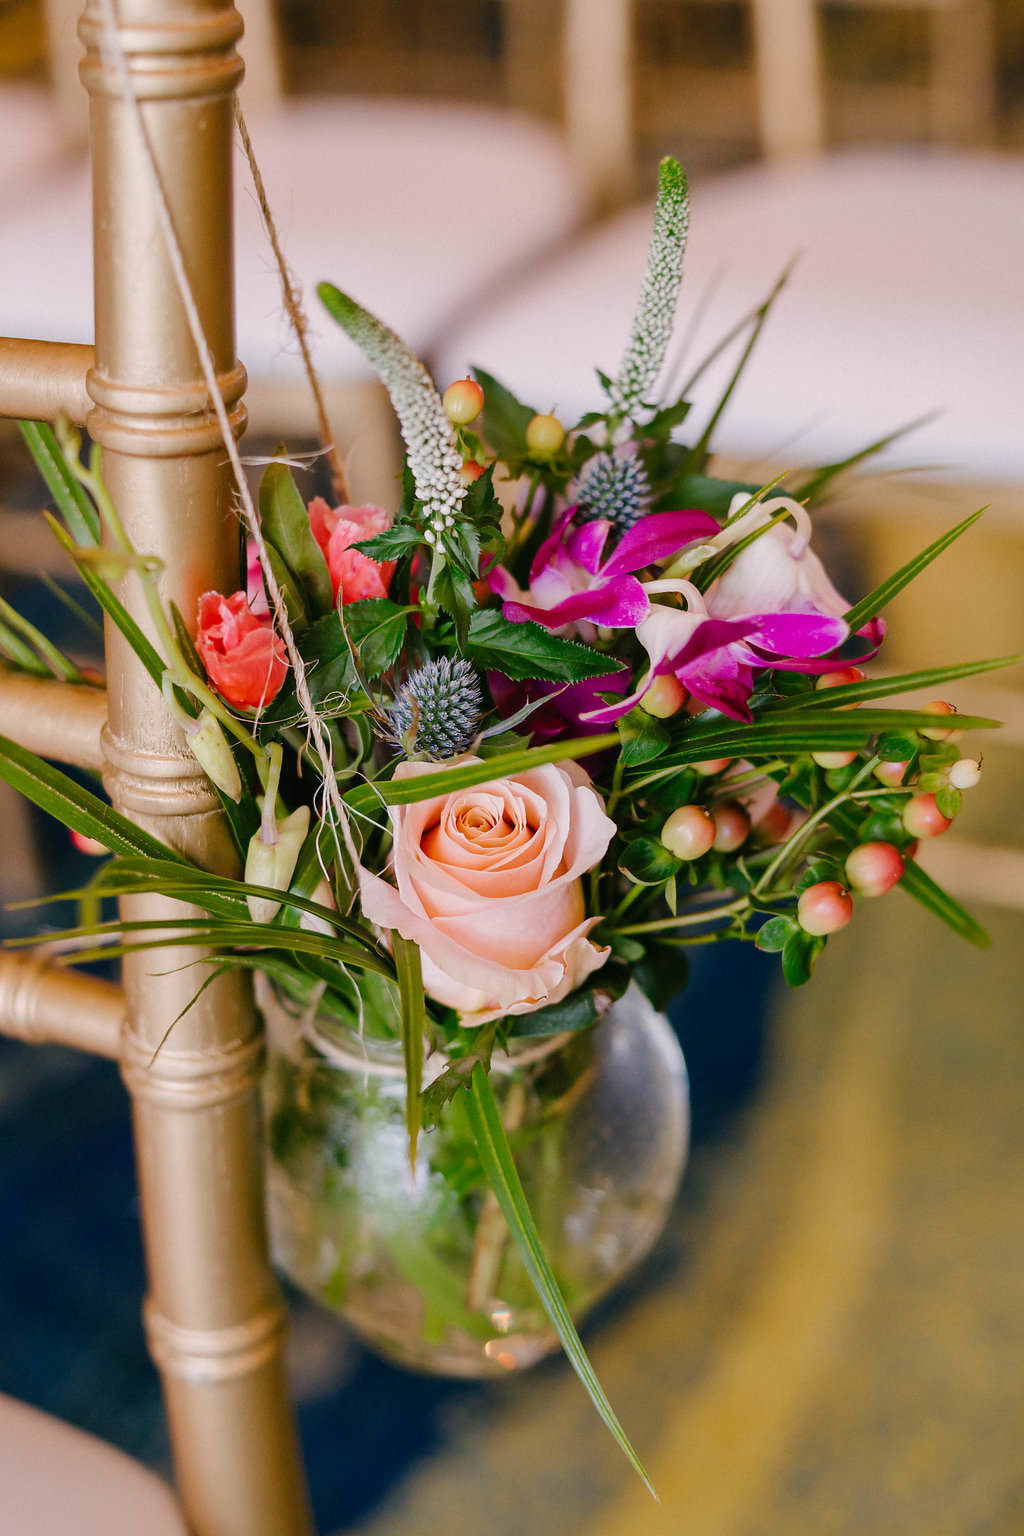 Tropical Inspired Wedding Ceremony Decor, Pink Rose, Purple Orchid, Berries and Greenery Bouquet in Glass Vase Hanging from Gold Chiavari Chair | Tampa Bay Wedding Photographer Grind and Press | Special Moments Event Planning